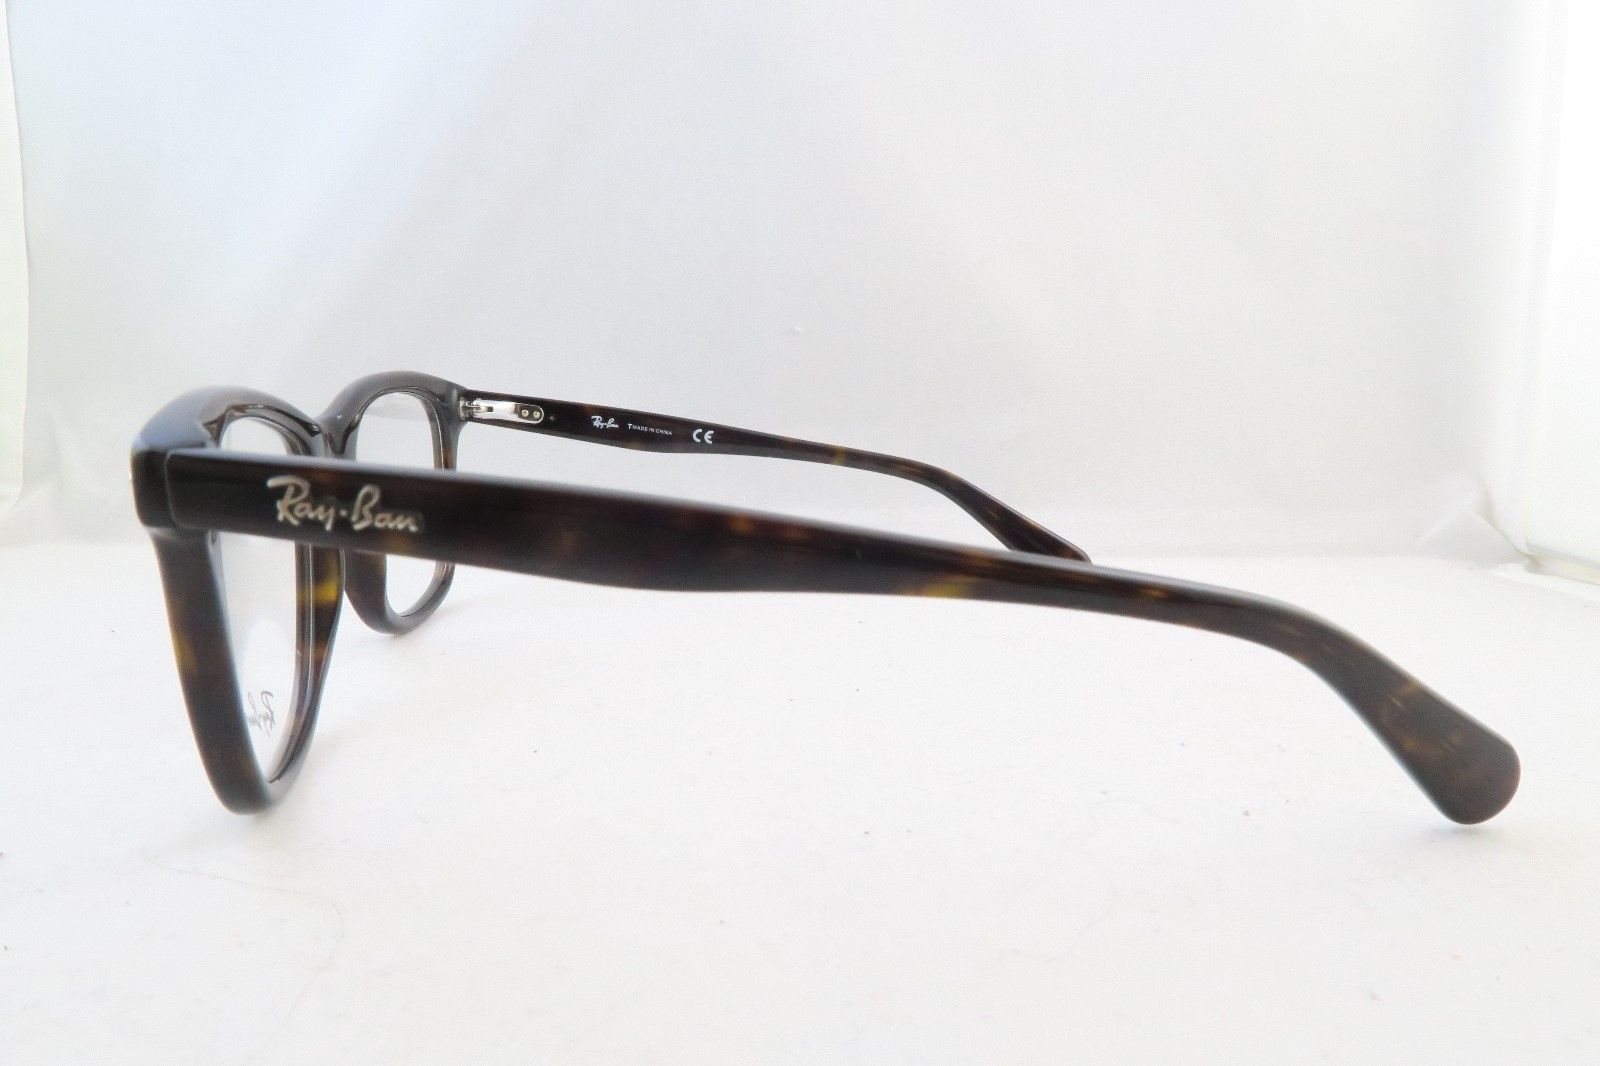 88709fdf4b4a8 Ray-Ban RB 5317 2012 Havana New Authentic Eyeglasses 52mm Square -6